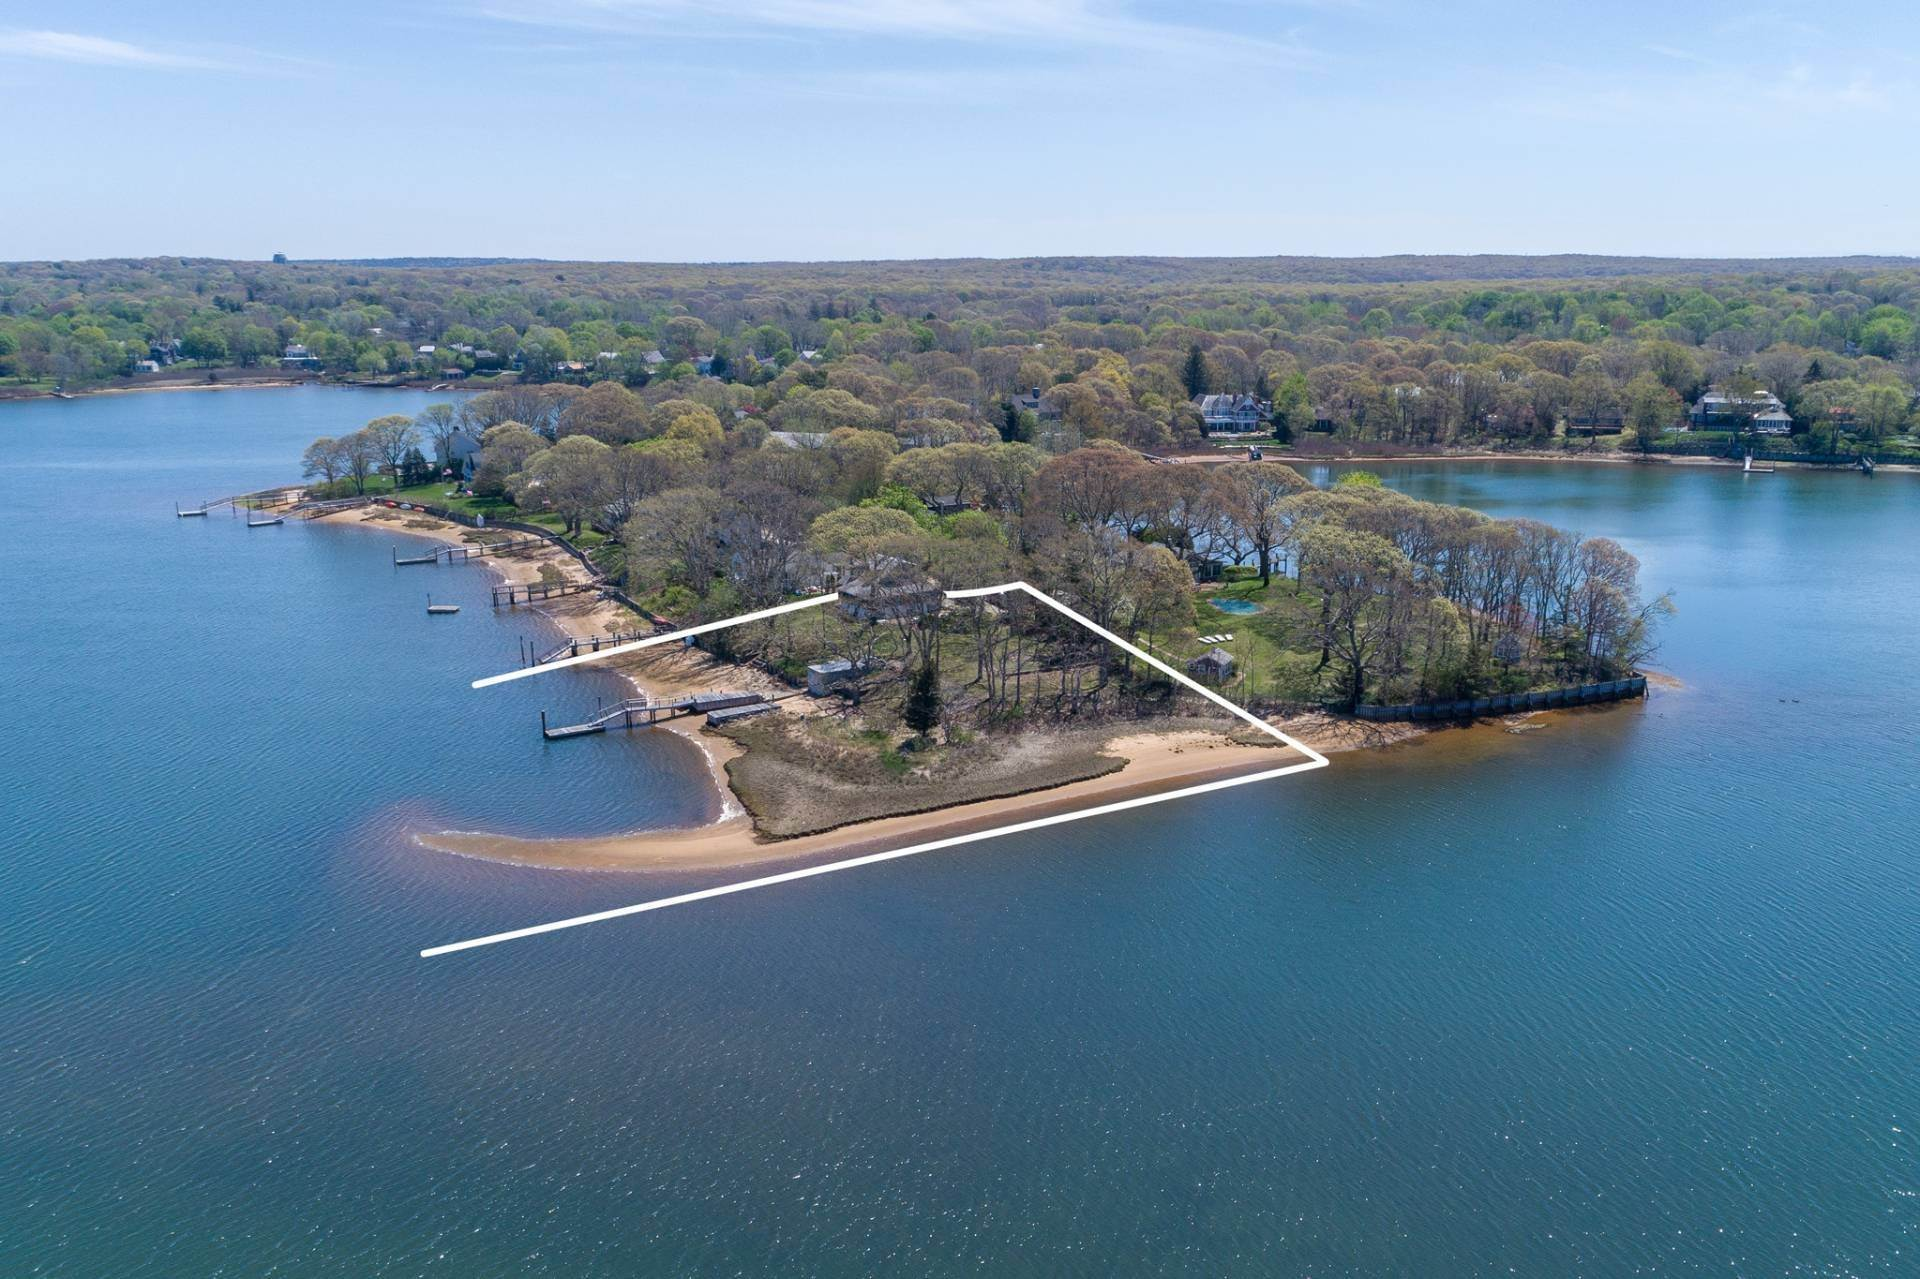 Single Family Home for Sale at Sag Harbor Village Waterfront 1 Bluff Point Lane, Sag Harbor, NY 11963